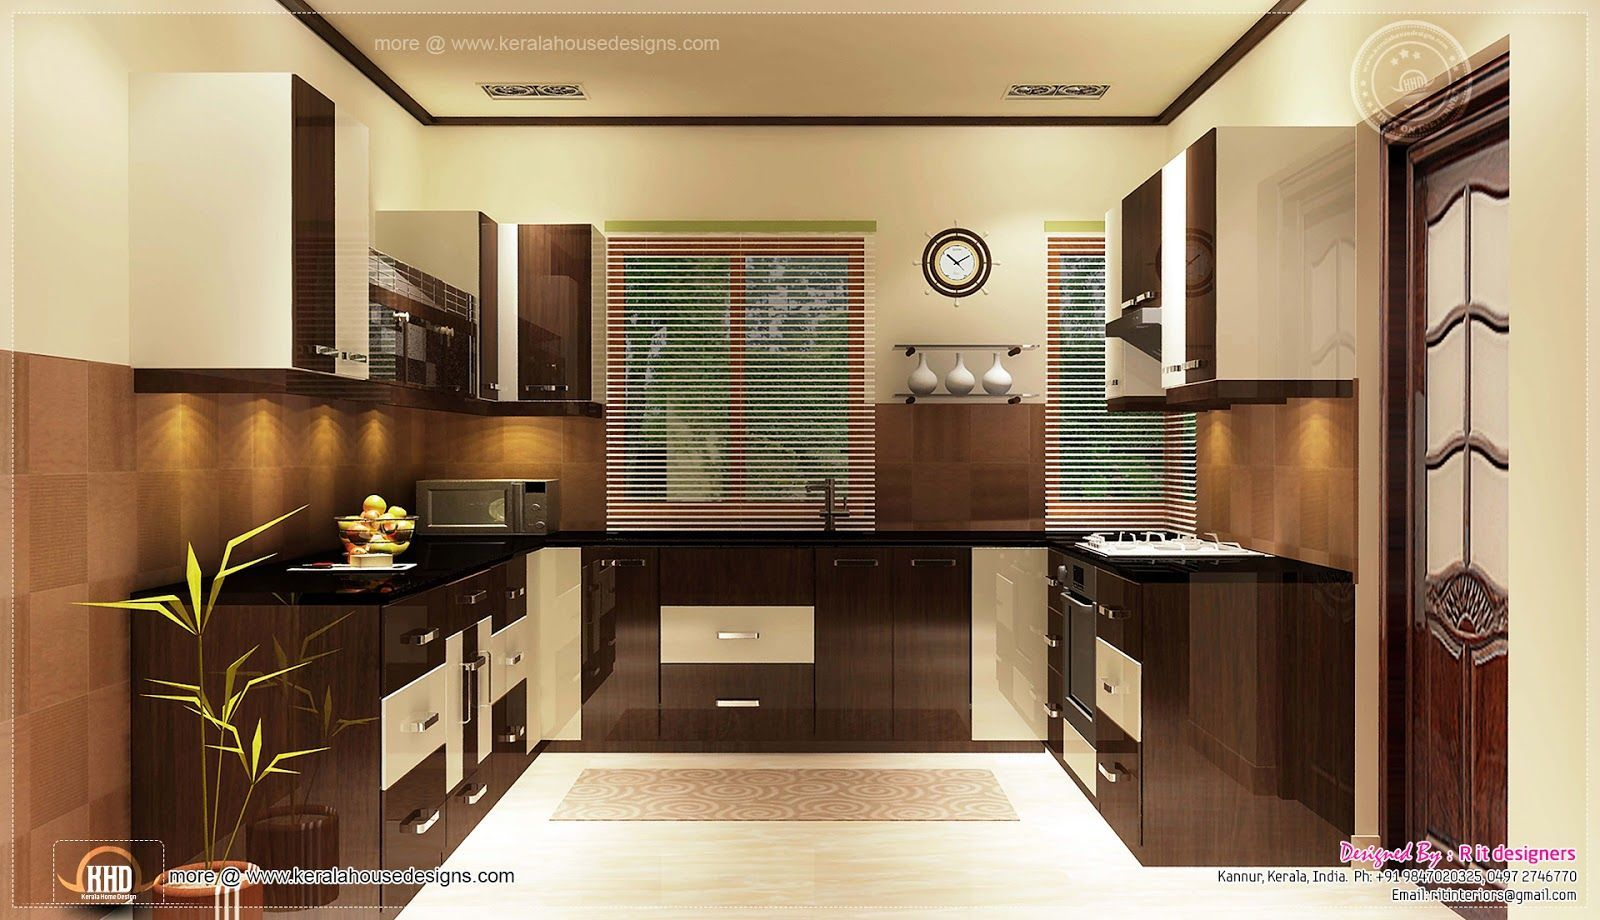 Bedroom Design For Middle Class Family Indian Home Interior